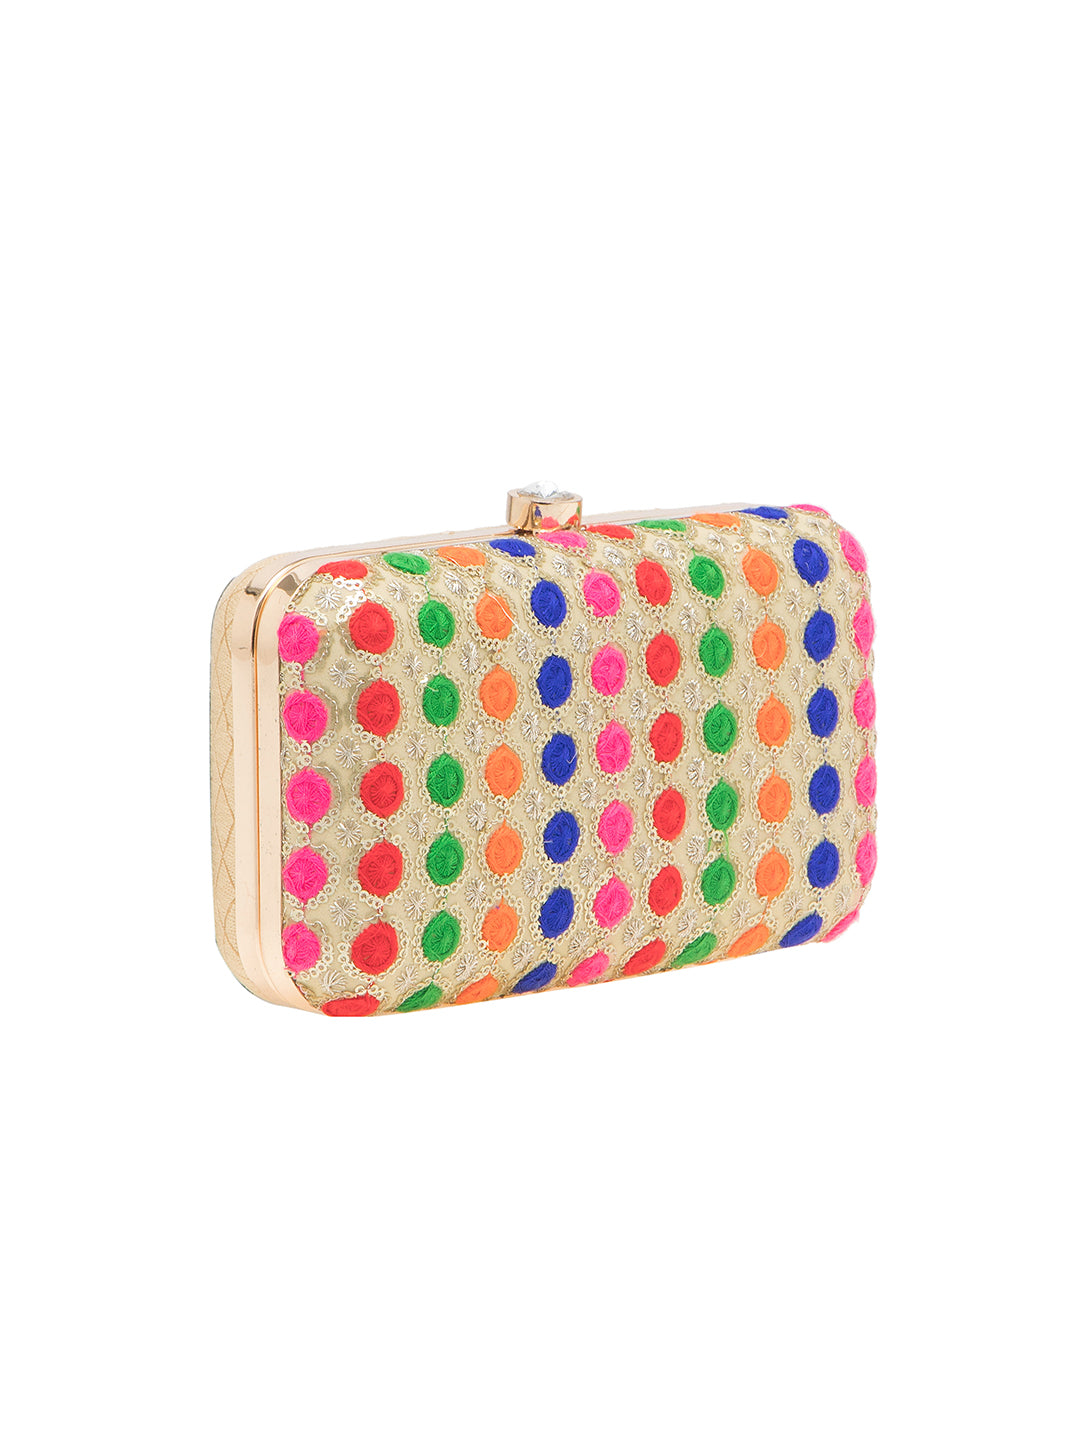 A standout fashion accessory that will let you garner compliments anywhere you go is this multicolored clutch from TARUSA. Exquisitely done with colorful sequin work and finished with metallic border, this luxurious piece also has a boxy design, a snap magnet and an attached chain shoulder strap inside. Uniquely designed in superior fabric, this pretty clutch will instantly add glamour to your outfit.